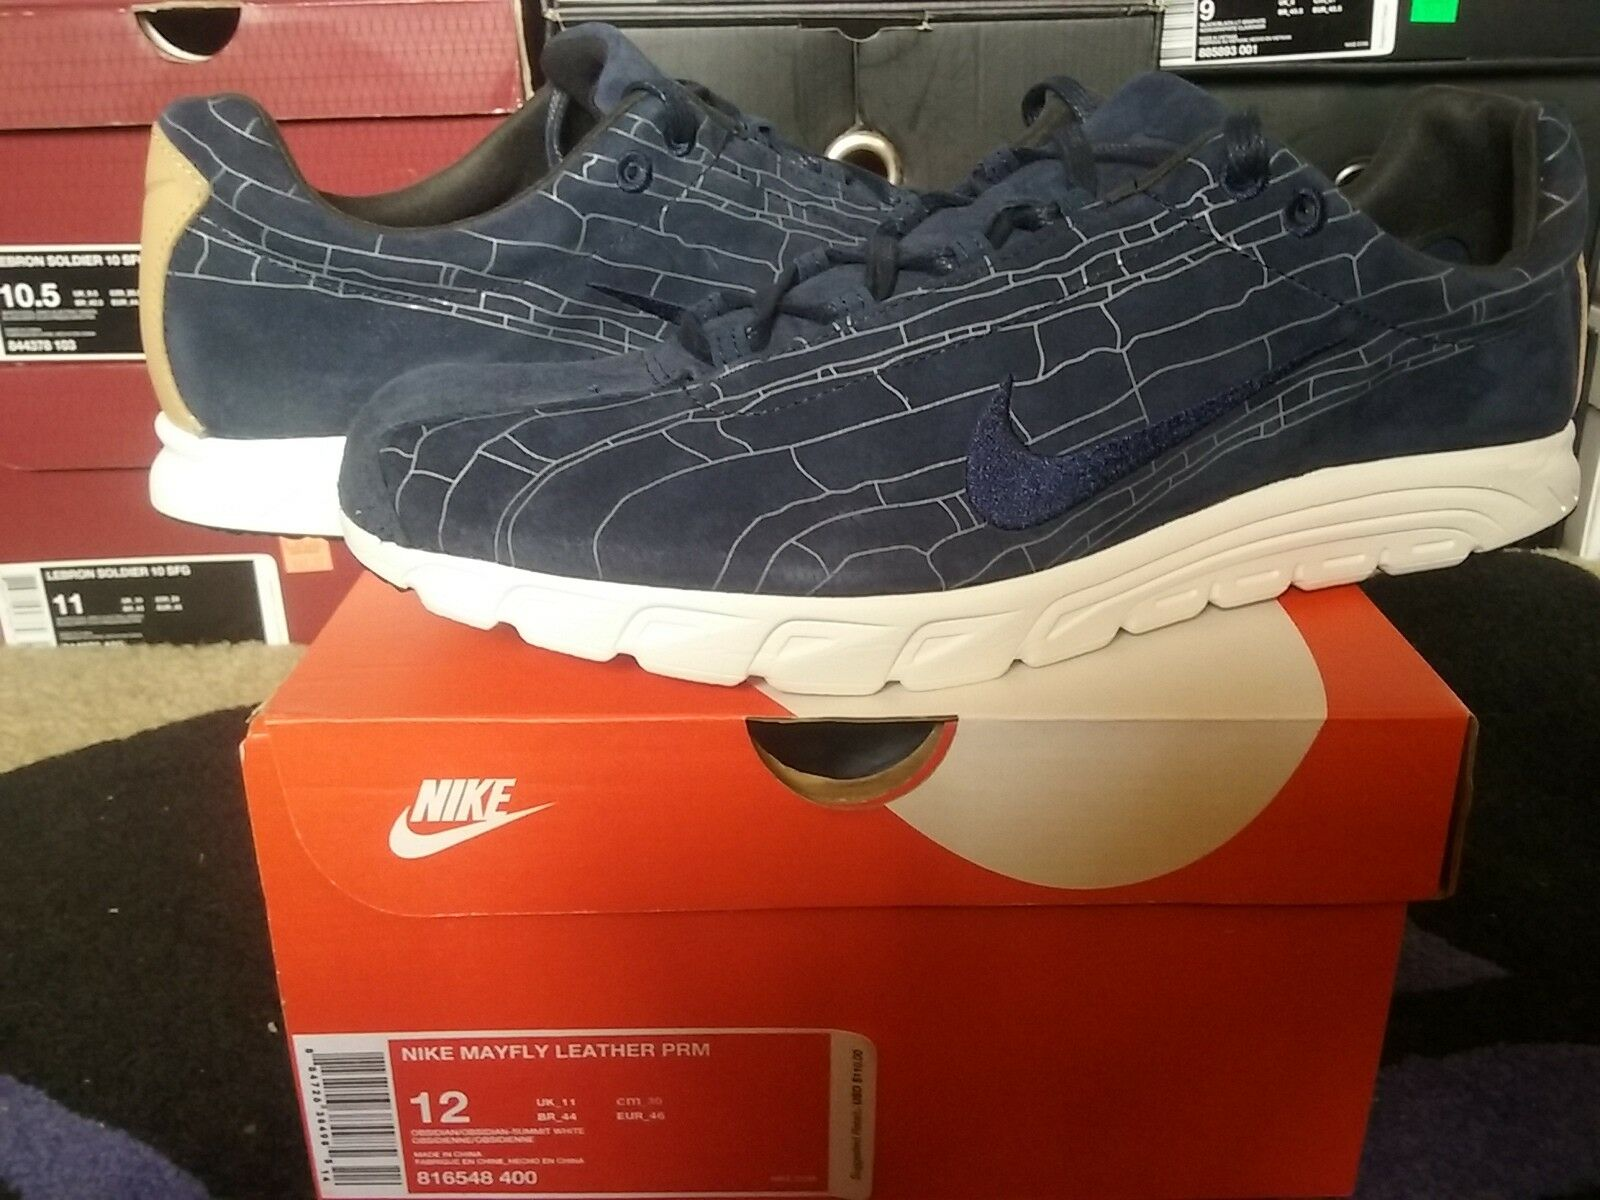 Nike Air Mayfly Leather L Premium PRM Suede Obsidian Summit White max 816548 400